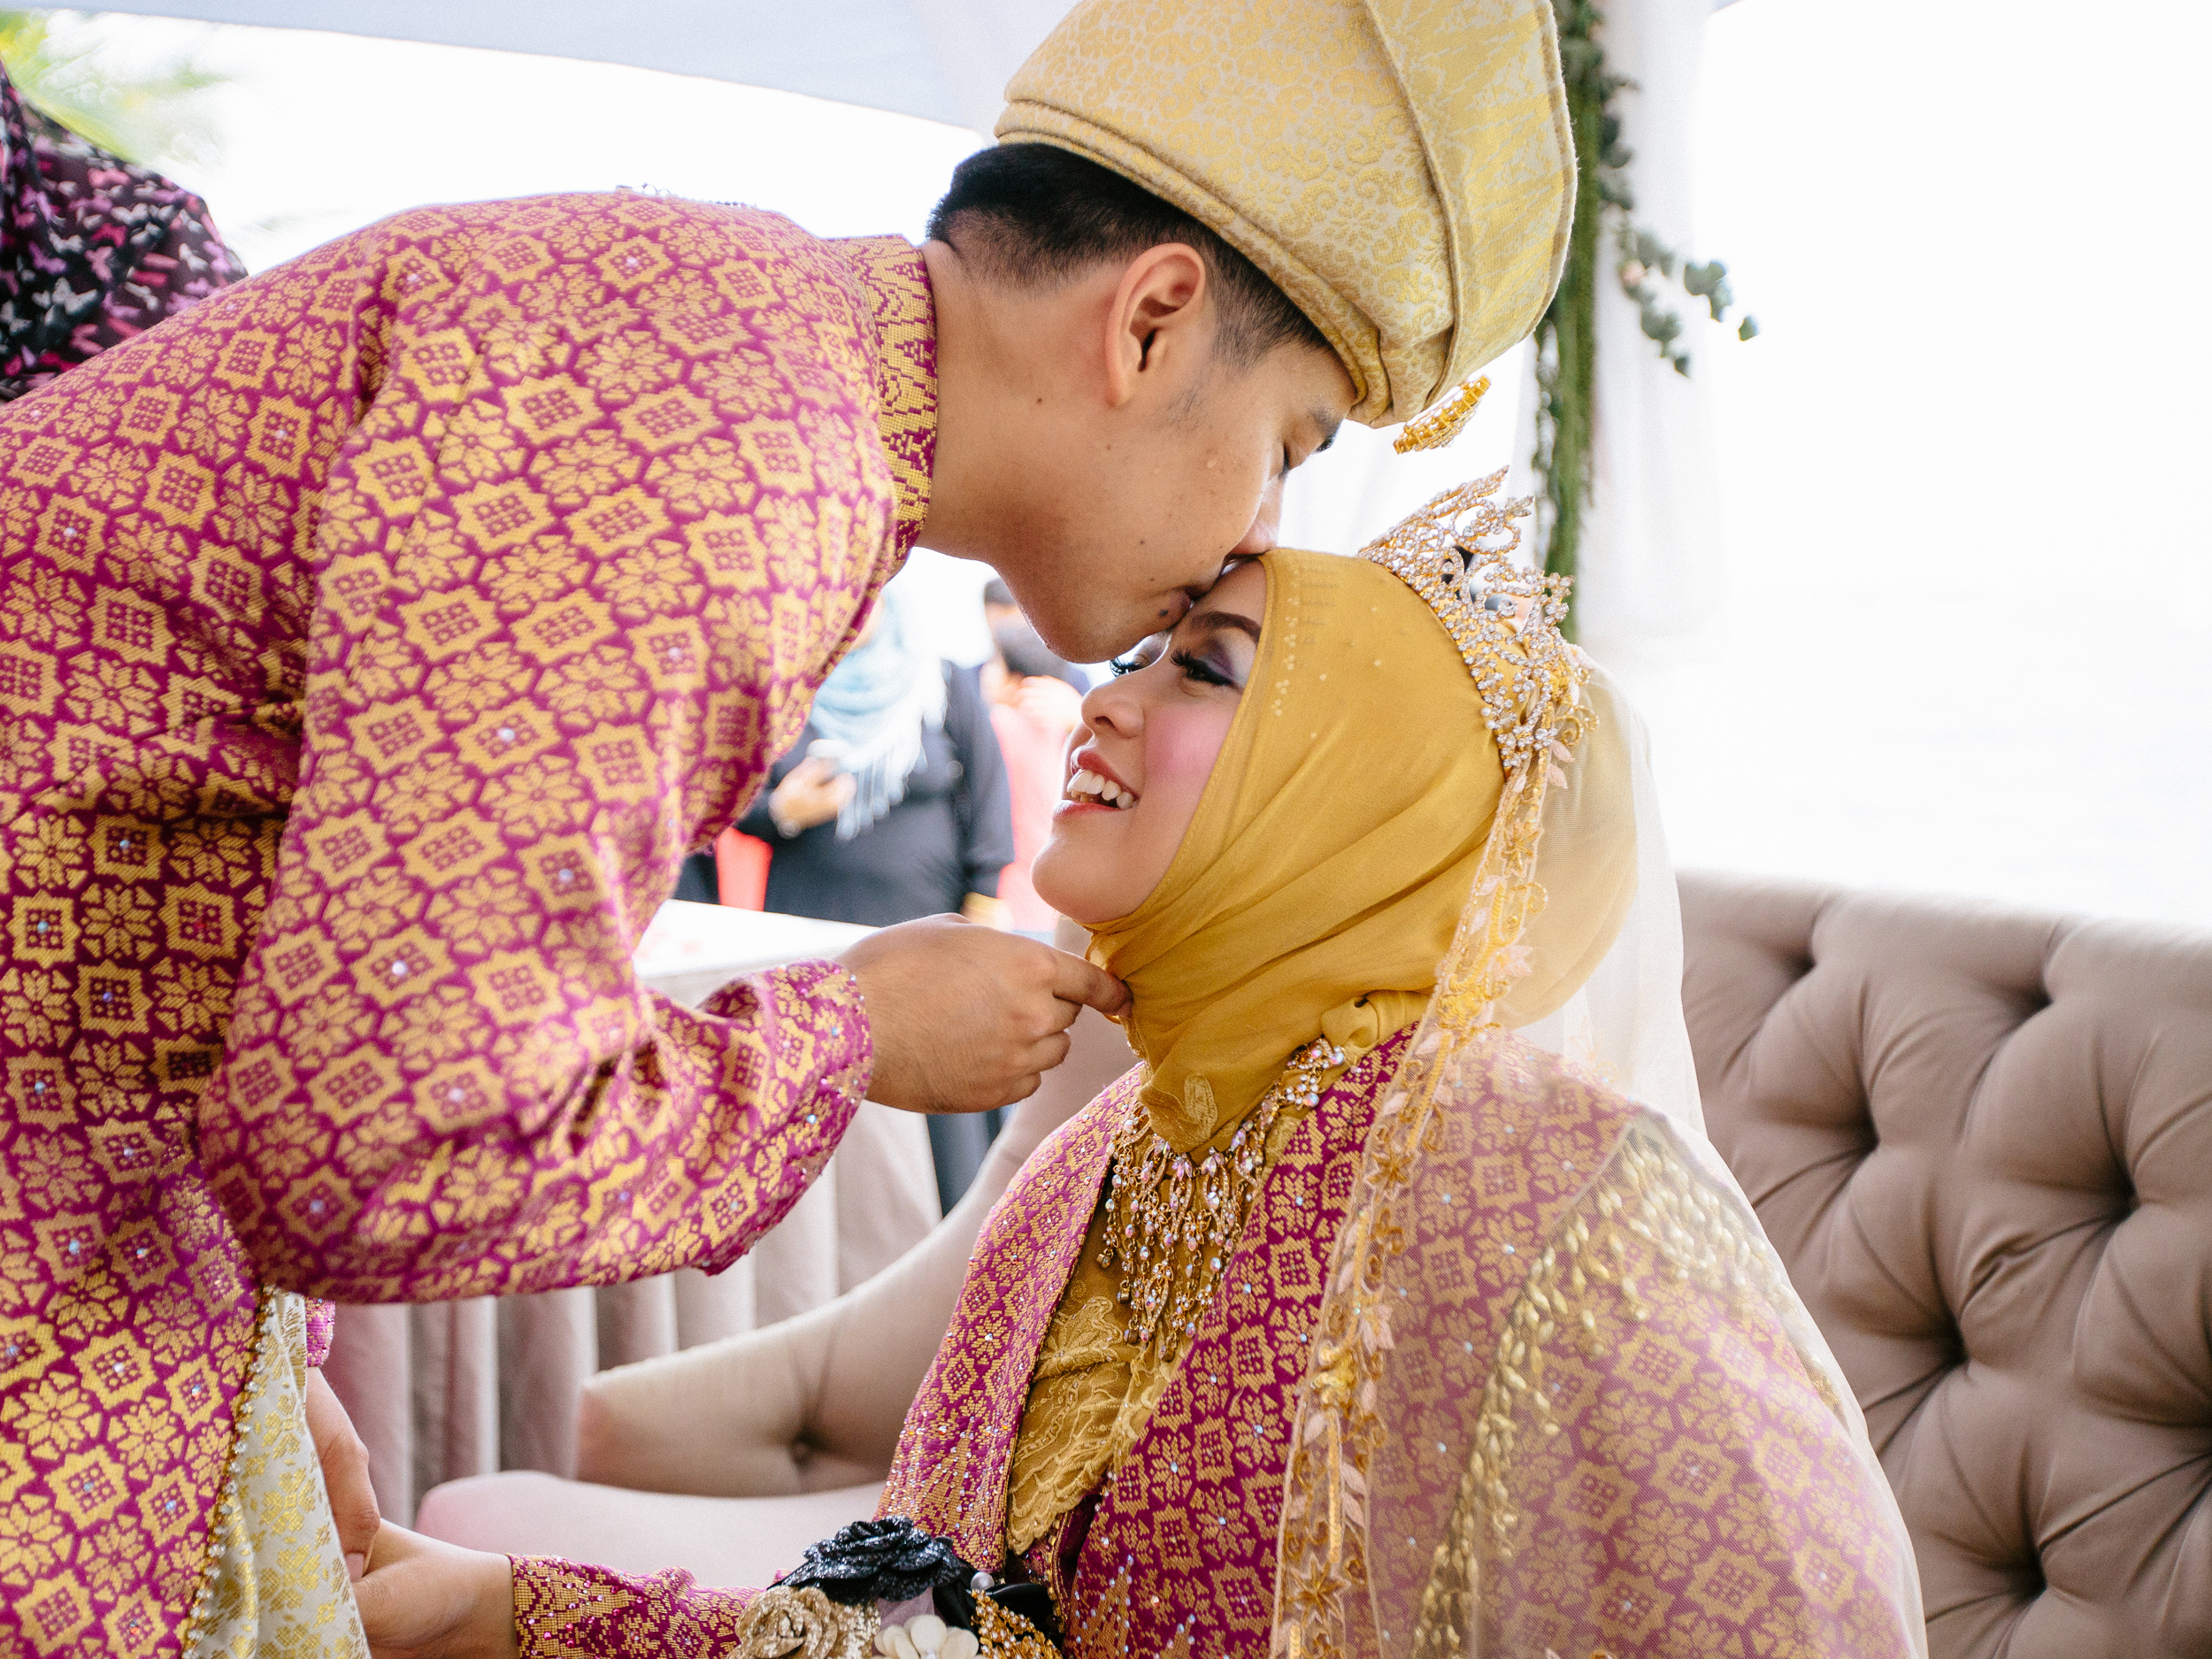 singapore-wedding-photographer-wemadethese-aisyah-helmi-44.jpg